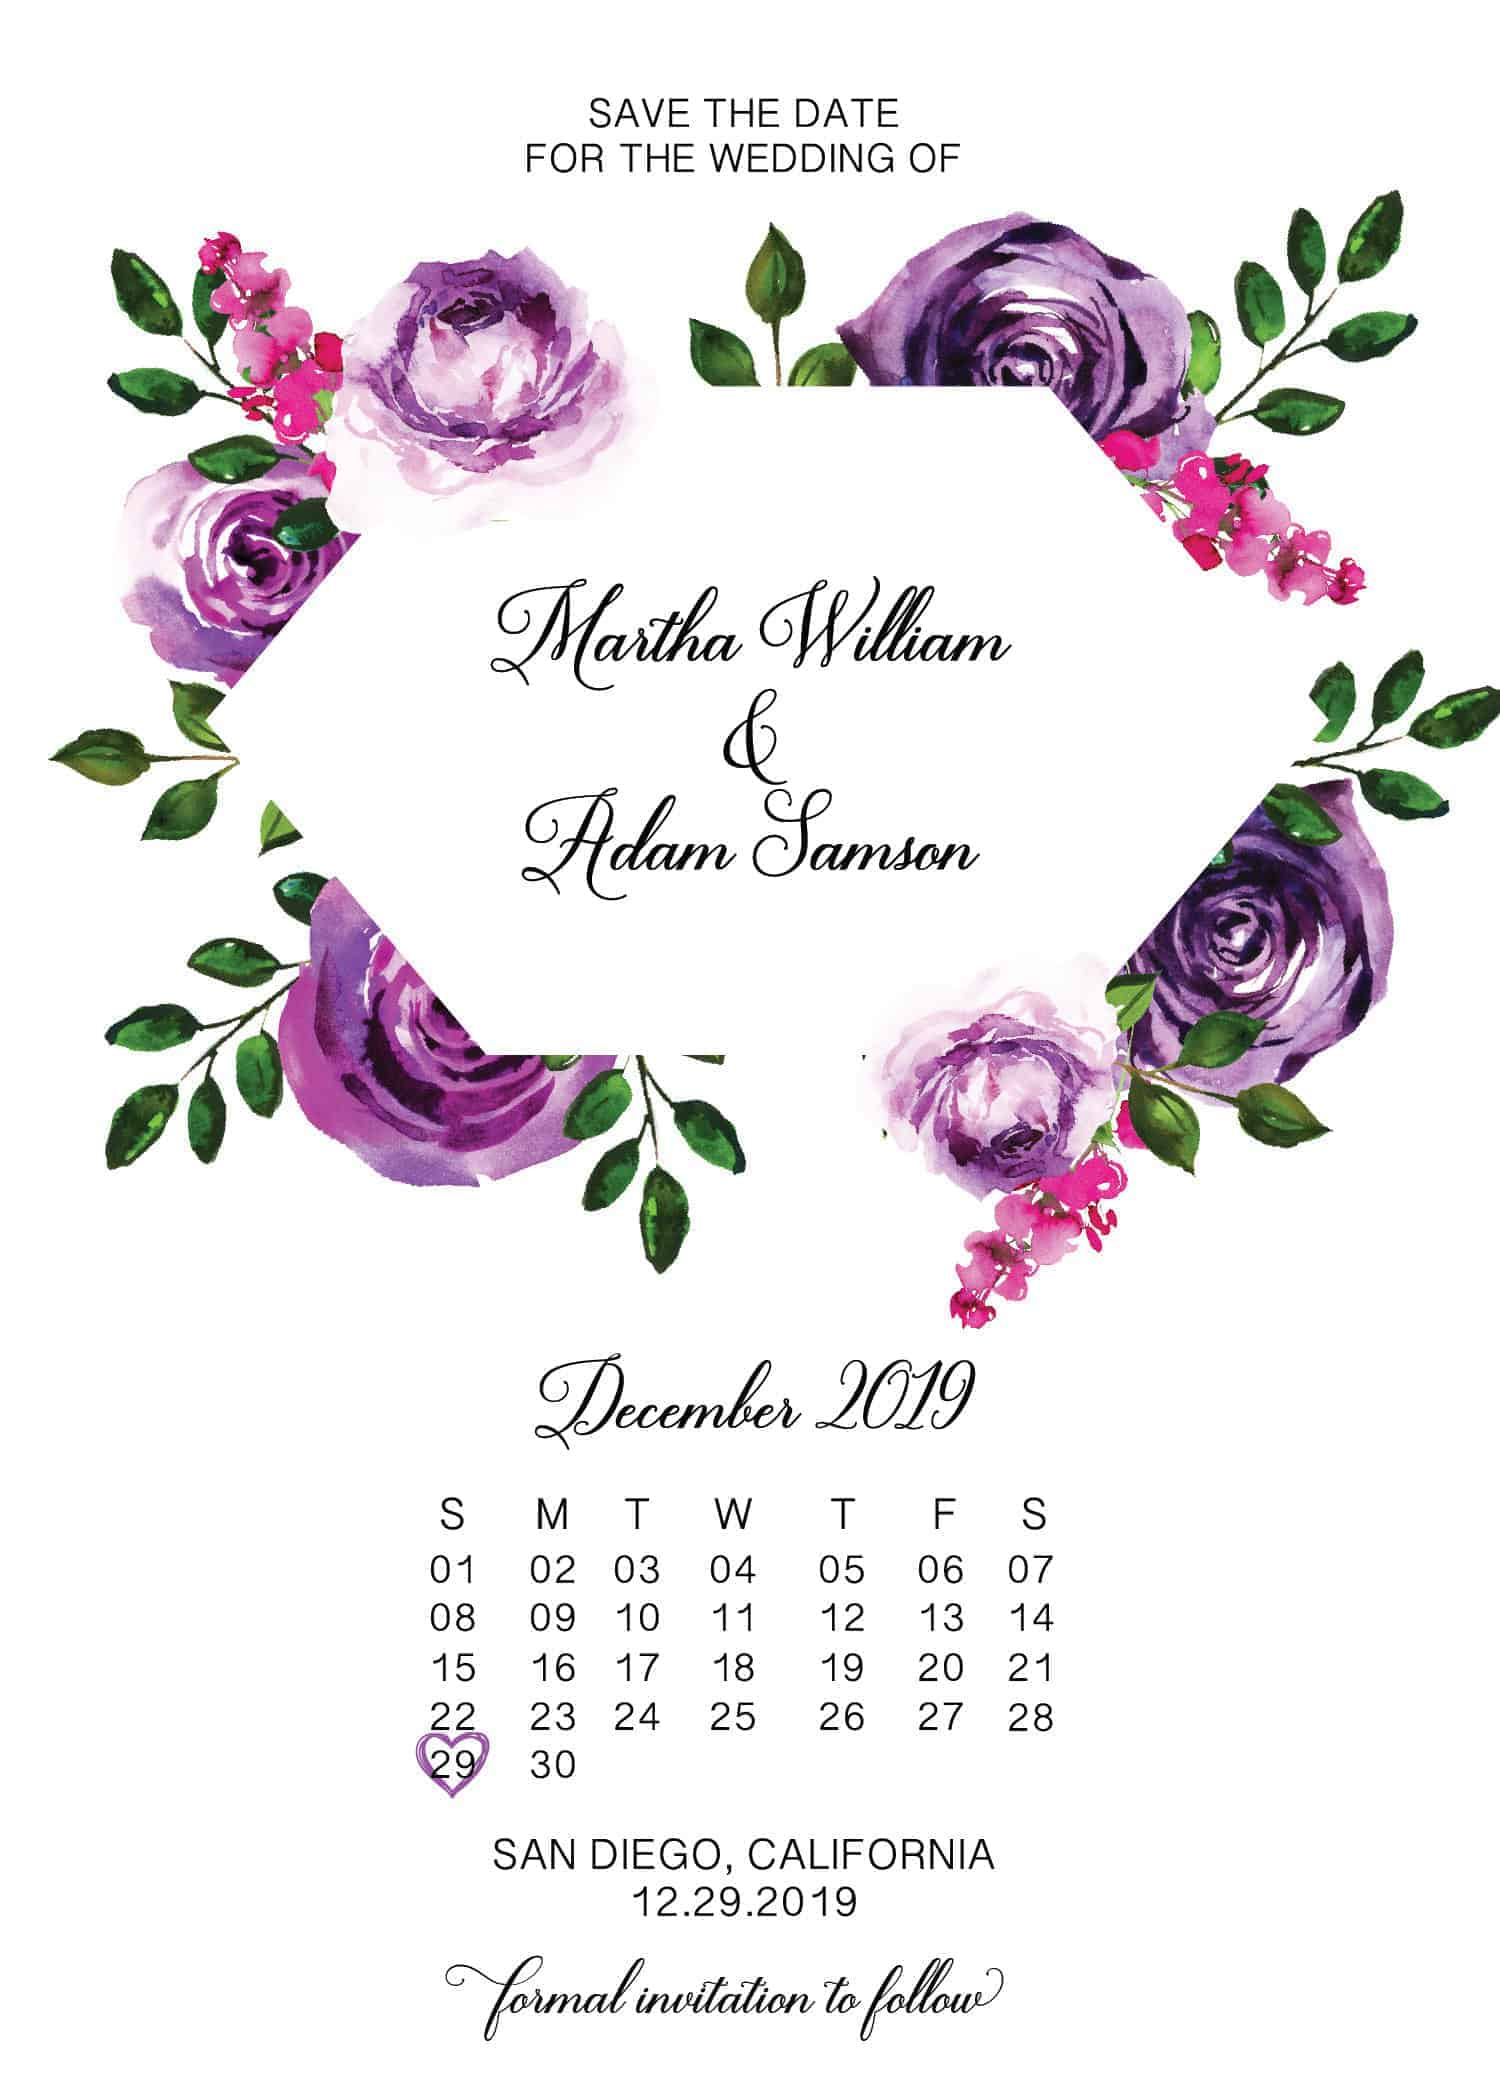 Purple Blossom, Geometric Save the Date Cards, Simple Save the Date Cards for Wedding, Personalized, Custom Save the Date Cards